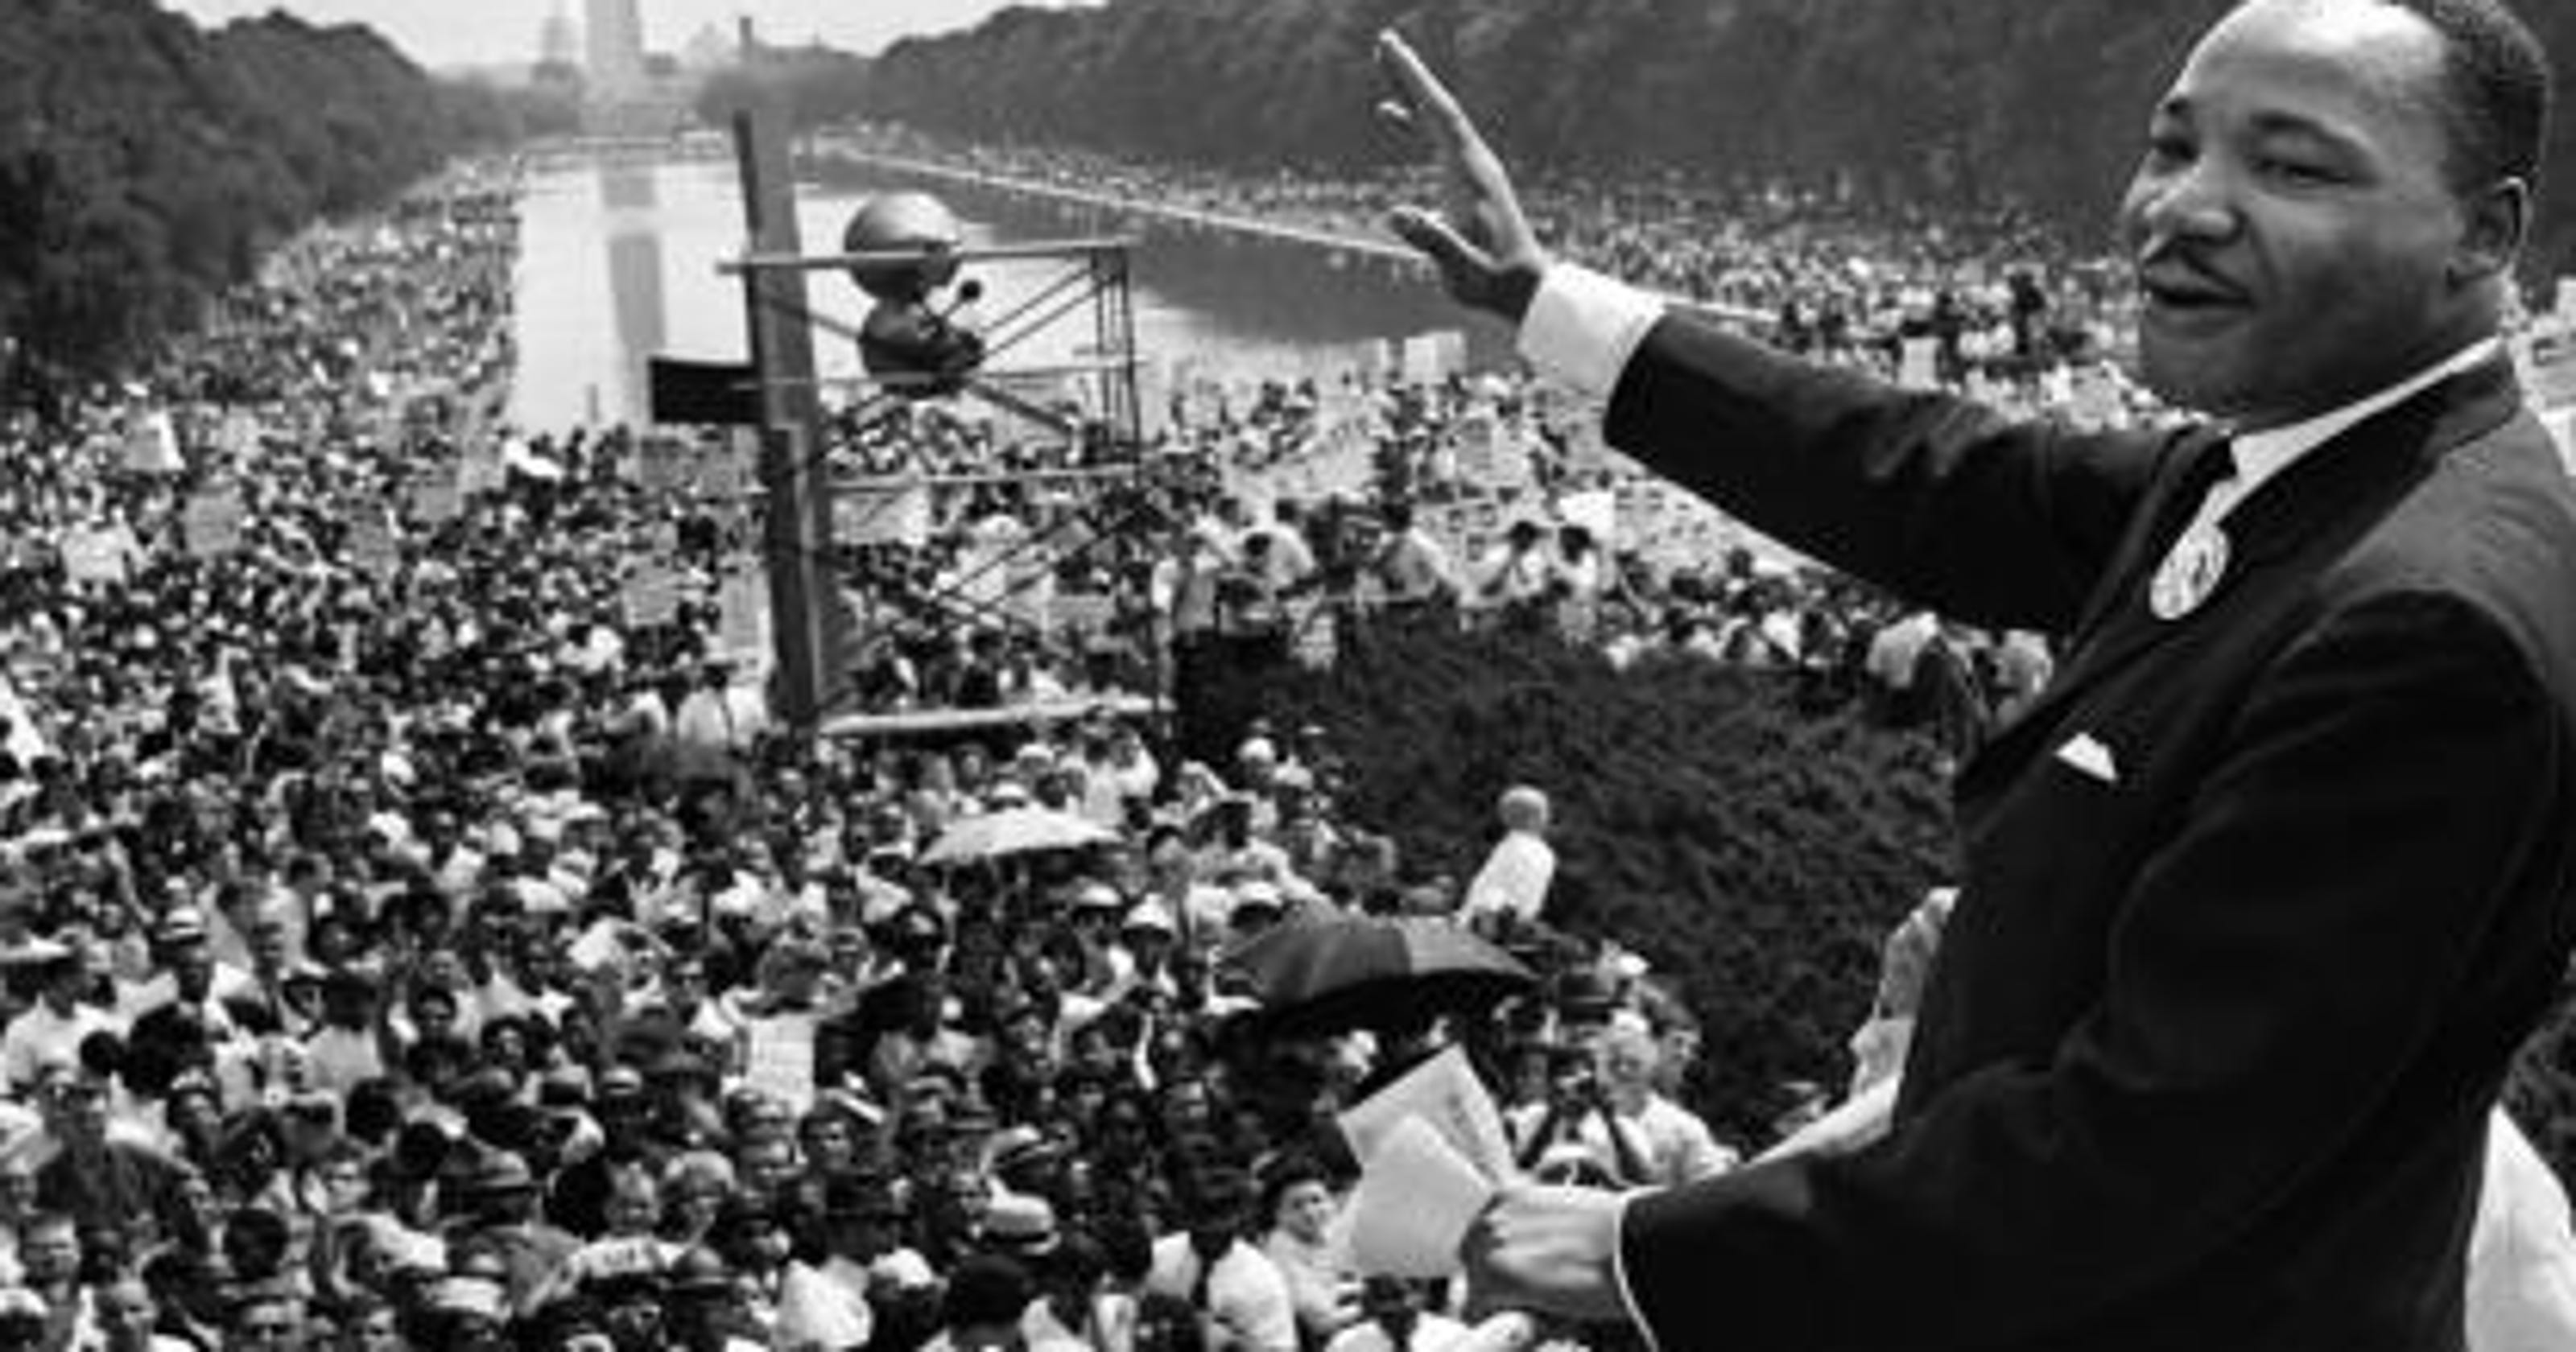 Early recording found of Martin Luther King Jr.'s 'I have ...